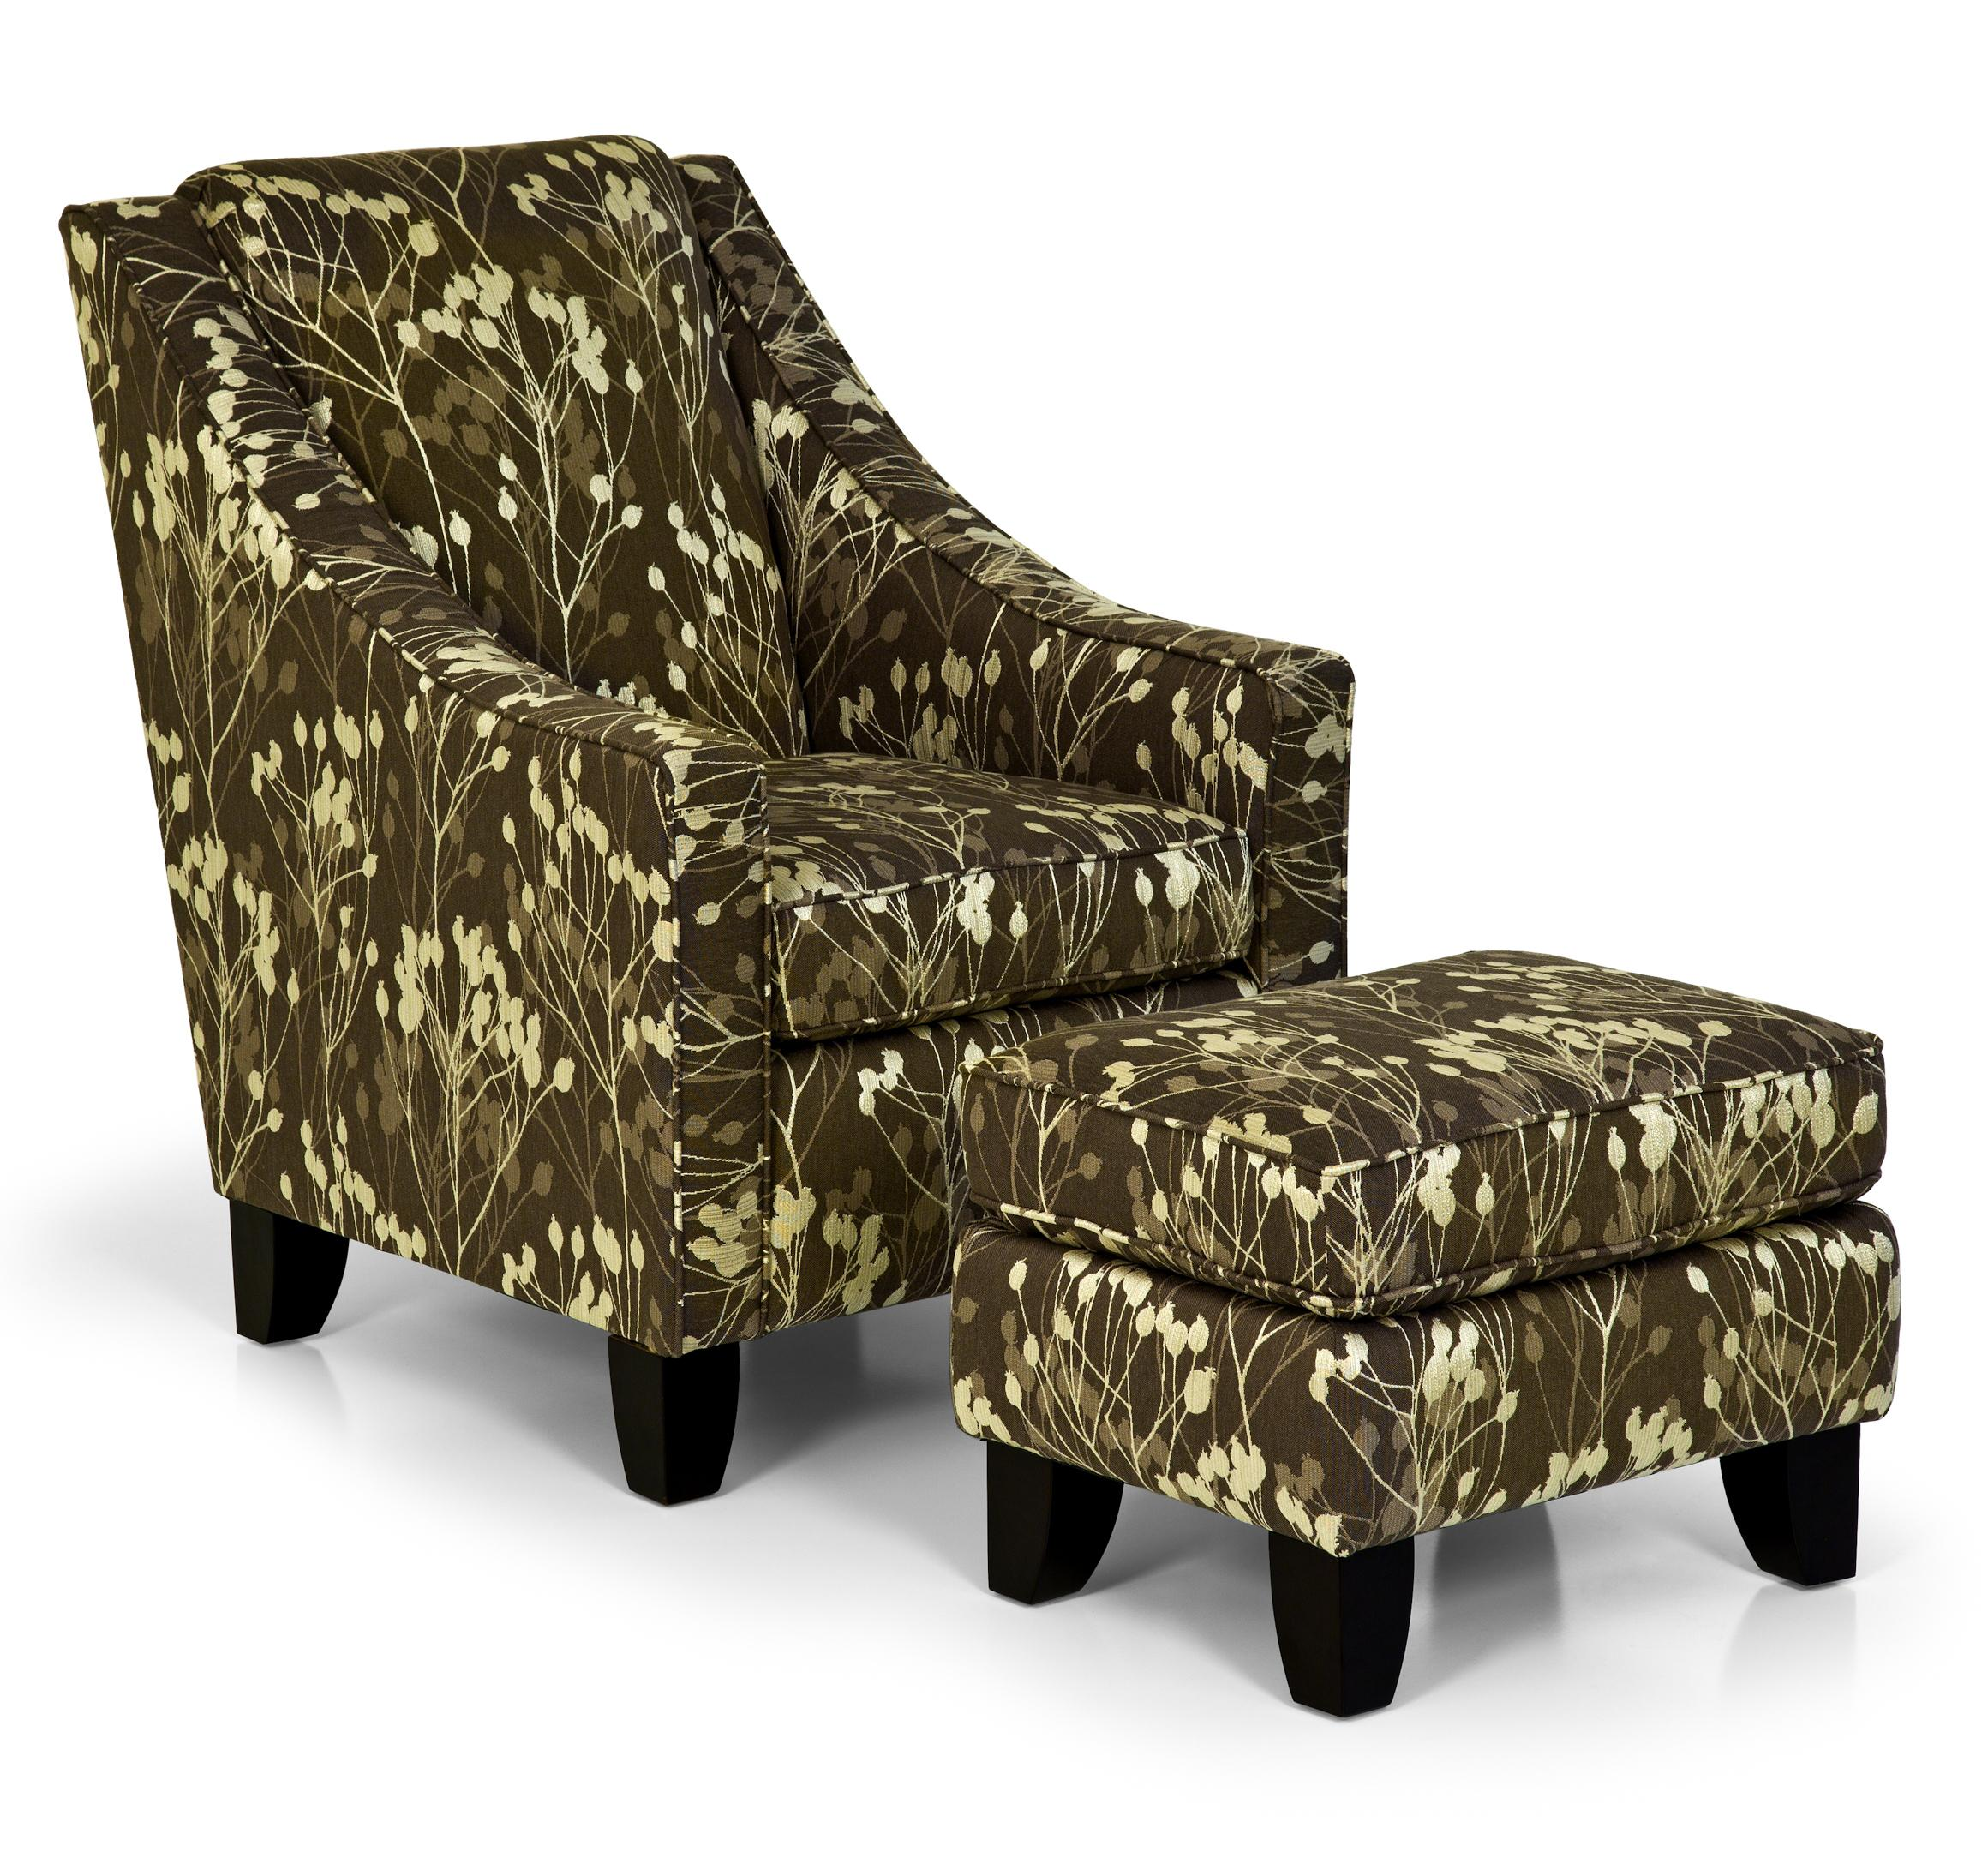 Stanton Accent Chairs And Ottomans Accent Chair And Ottoman   Item Number:  958 07